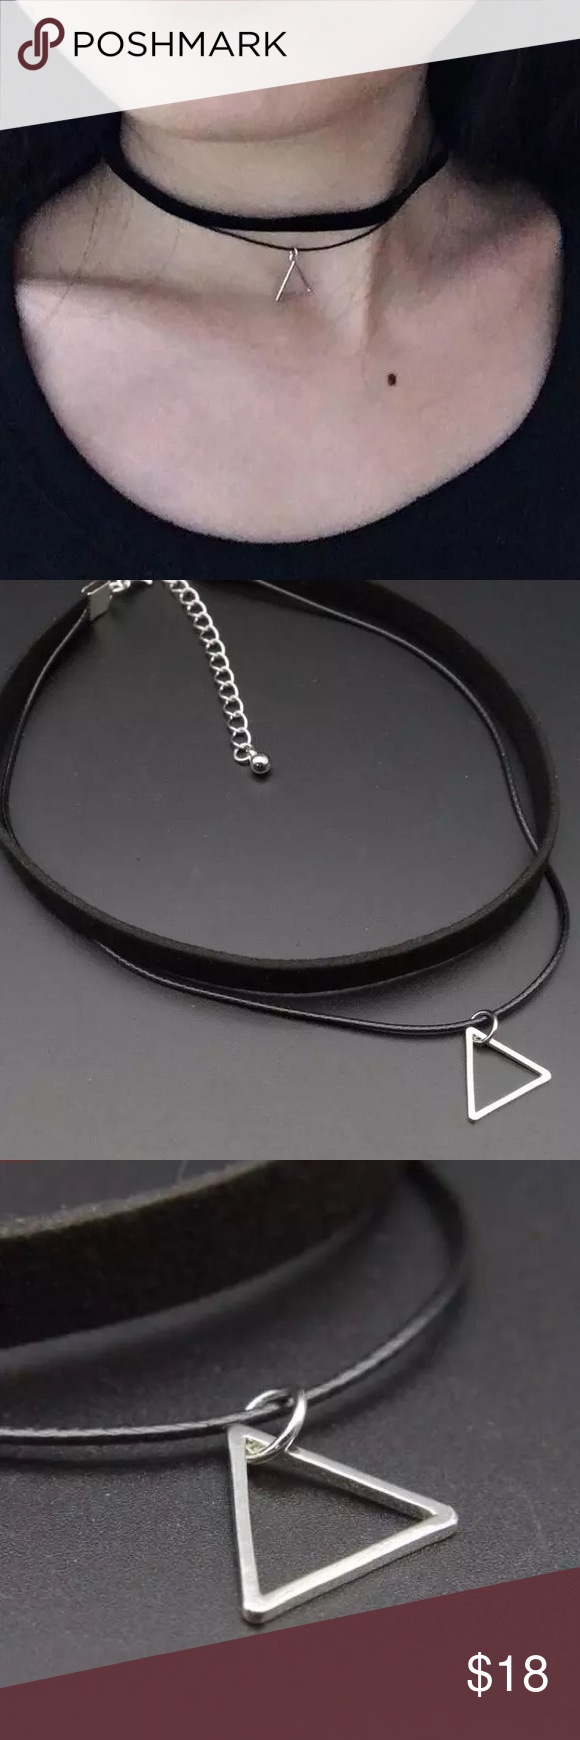 ⬇️Black Rope with Triangle Choker Boutique | Black rope, Black ...